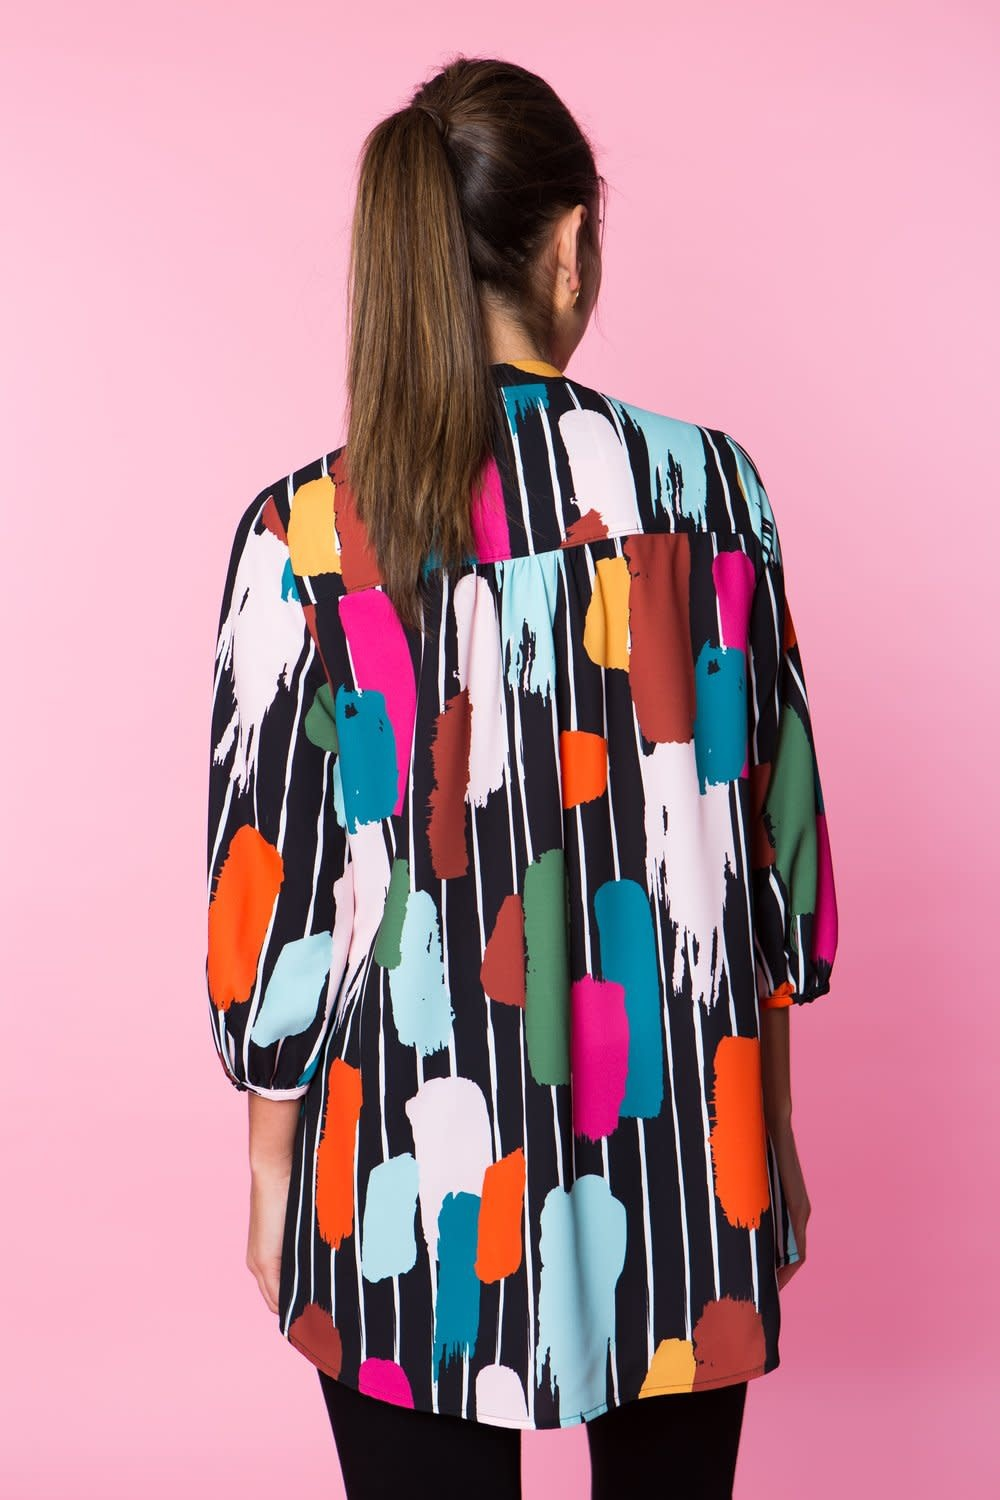 Crosby By Mollie Burch Marti Tunic in Paint Stripe